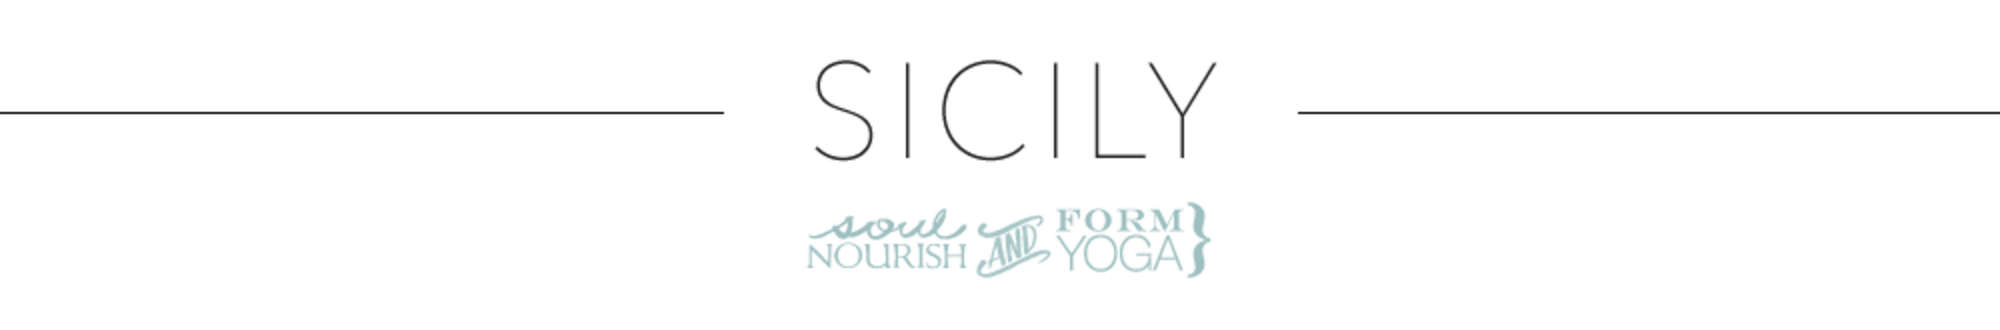 Sicily Retreat with FORM yoga and Soul Nourish